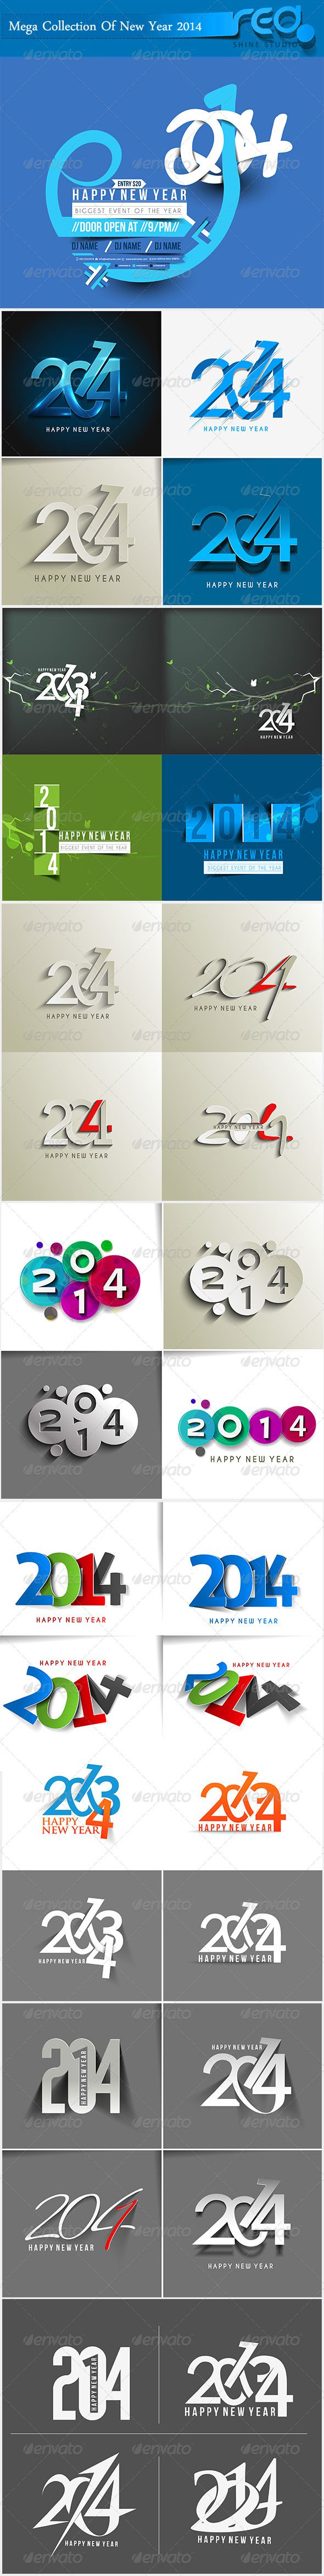 Happy New Year 2014 Background by redshinestudio Mega Collection of Decorative New Year Background. New Year 2014 Text Collection of different- different vector For Decorative Ne